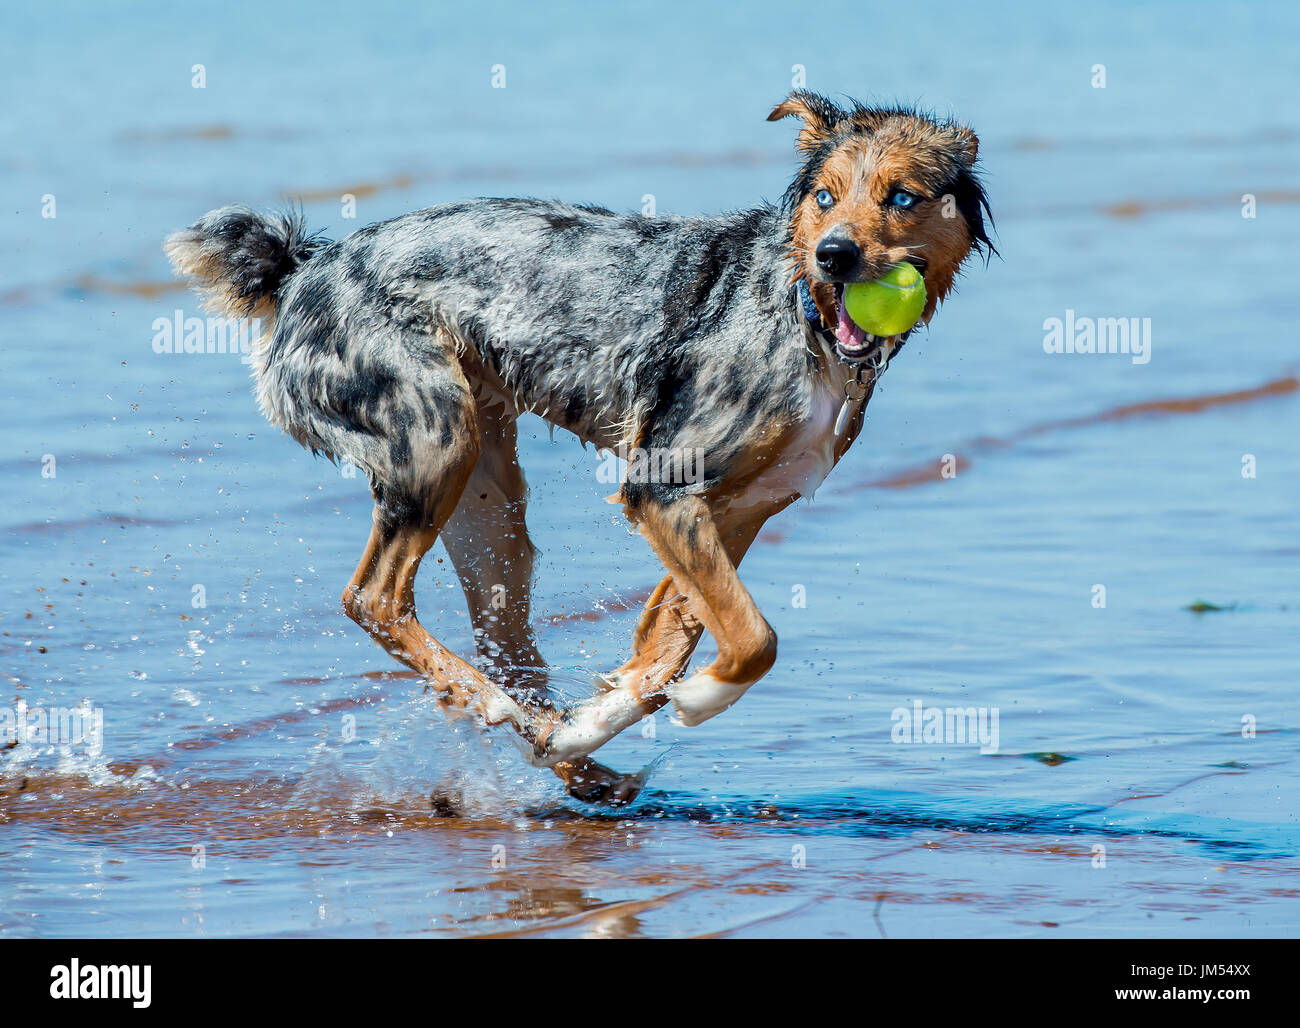 6e0ee2d4e Beautiful, stunning tri color Australian Shepherd dog running and playing  with tennis ball in mouth in shallow ocean water